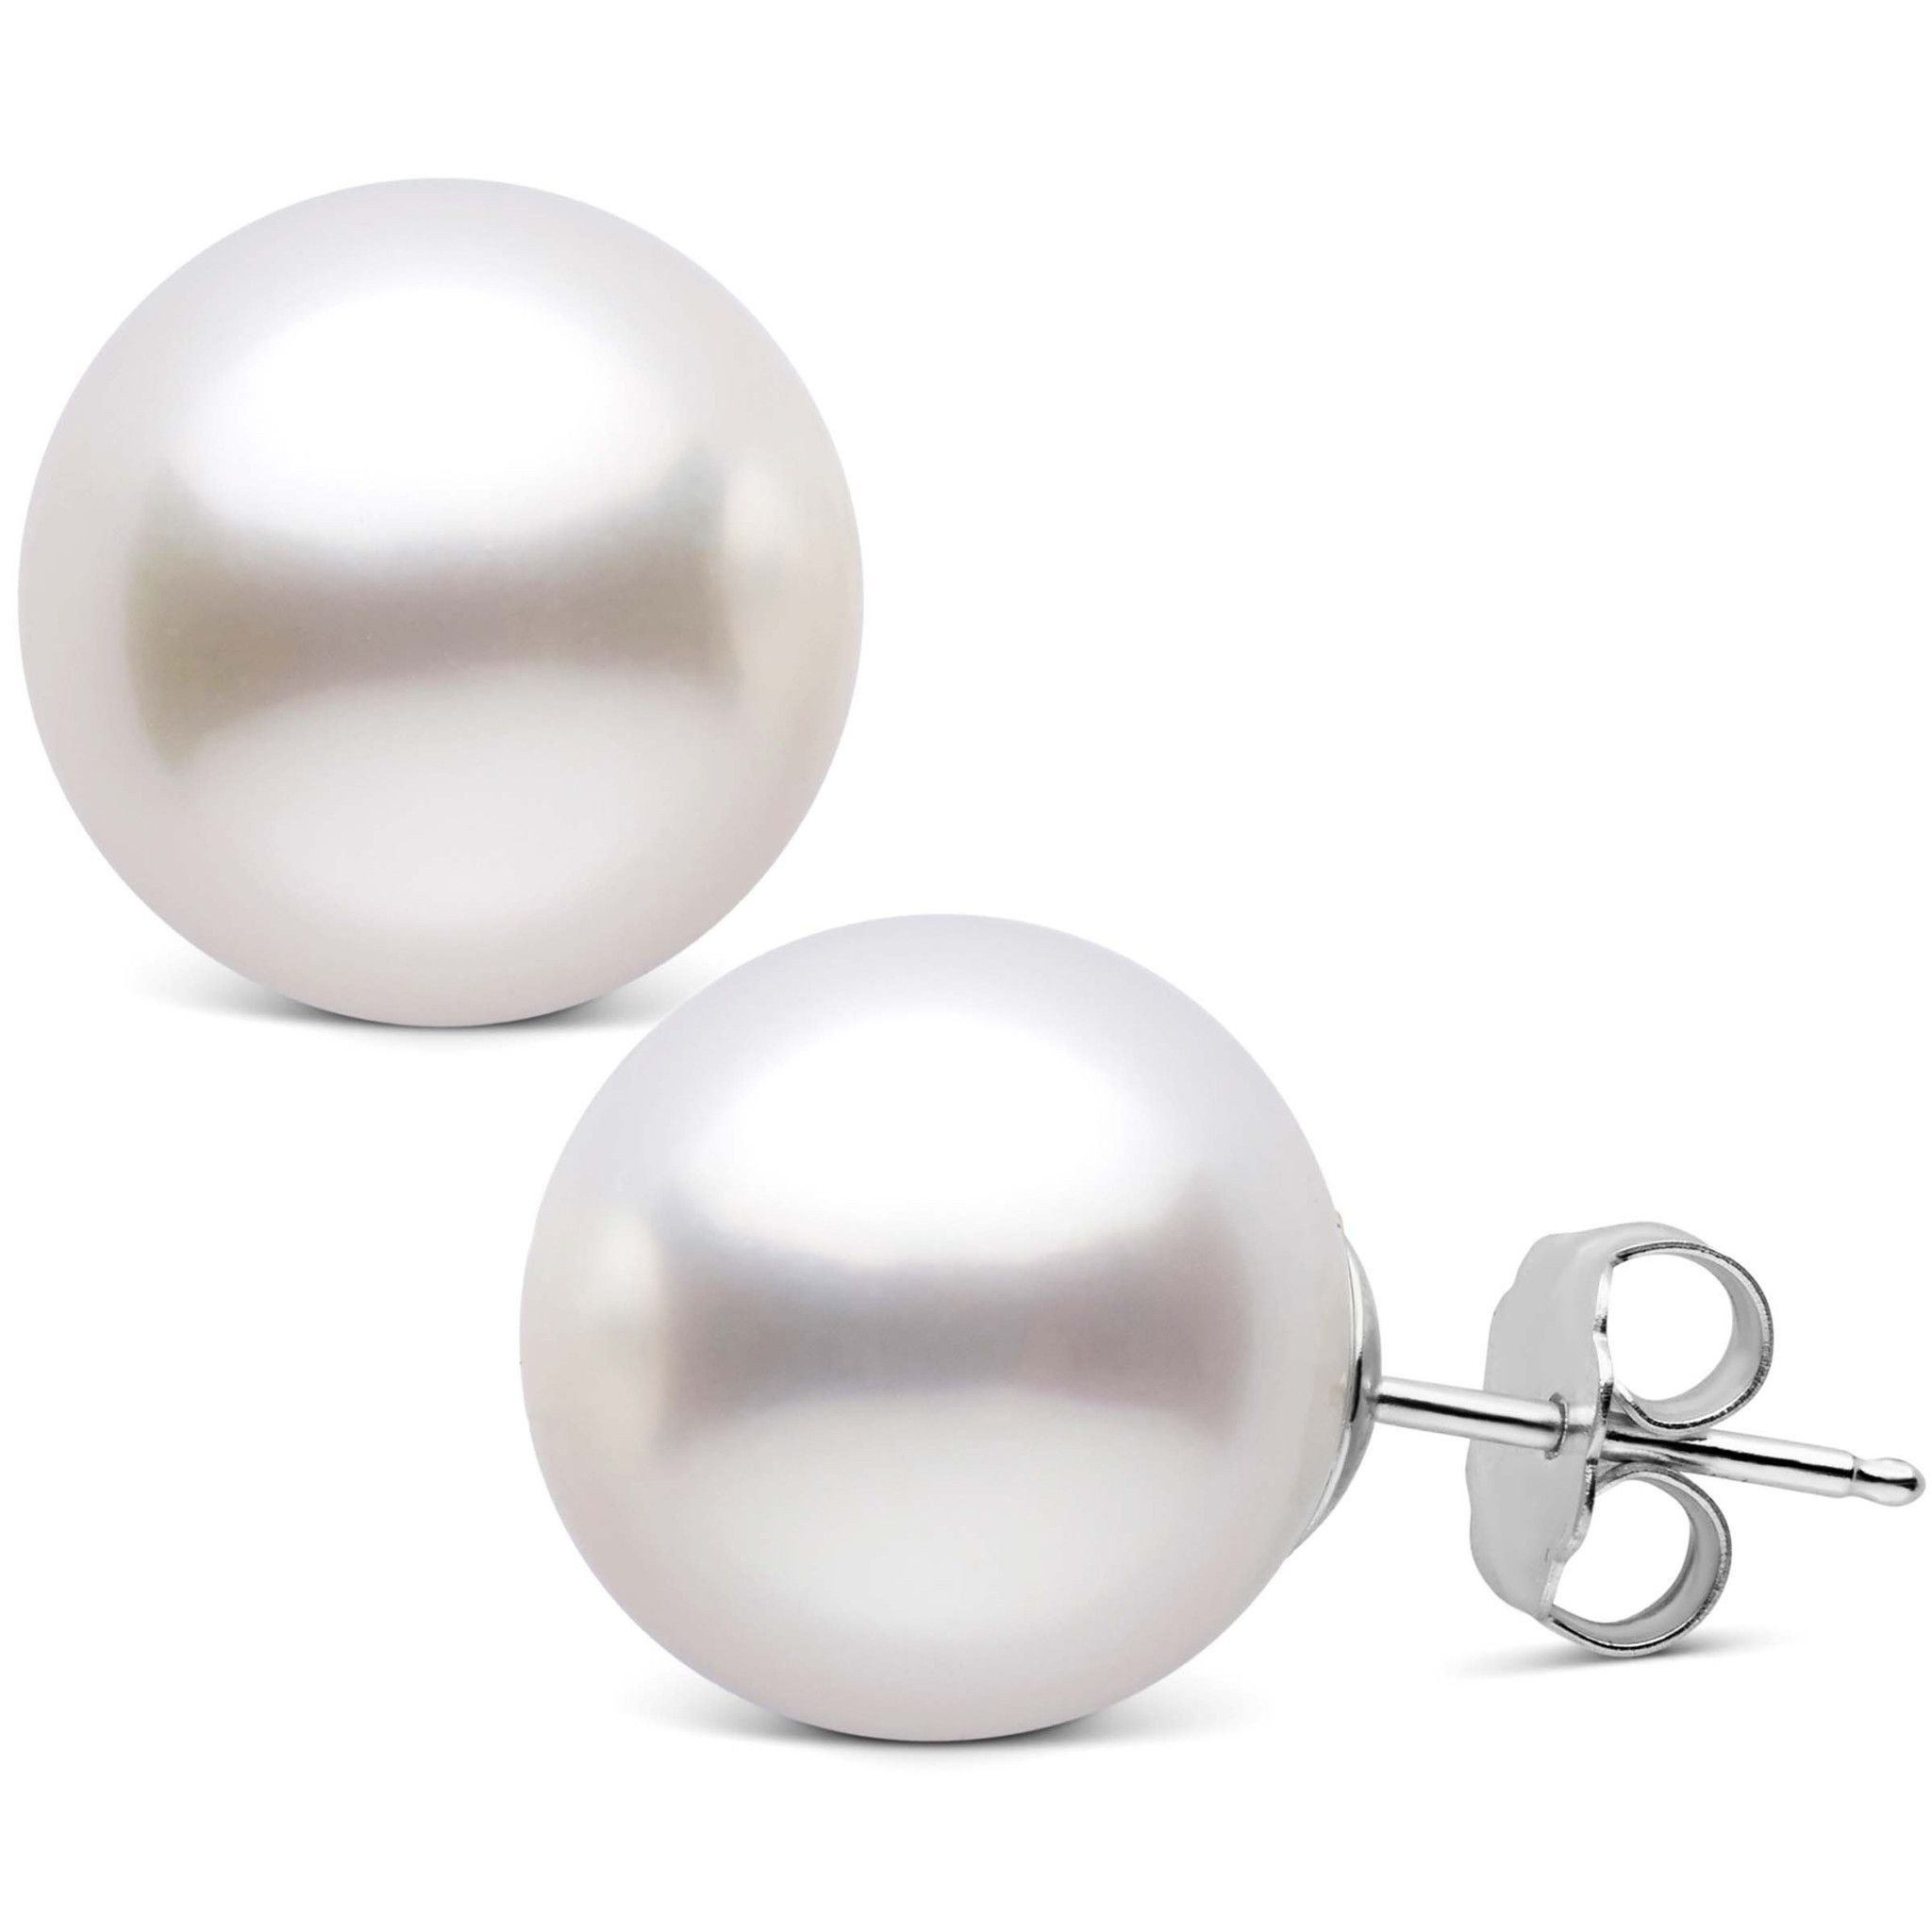 13.0-14.0 mm AAA White South Sea Pearl Stud Earrings